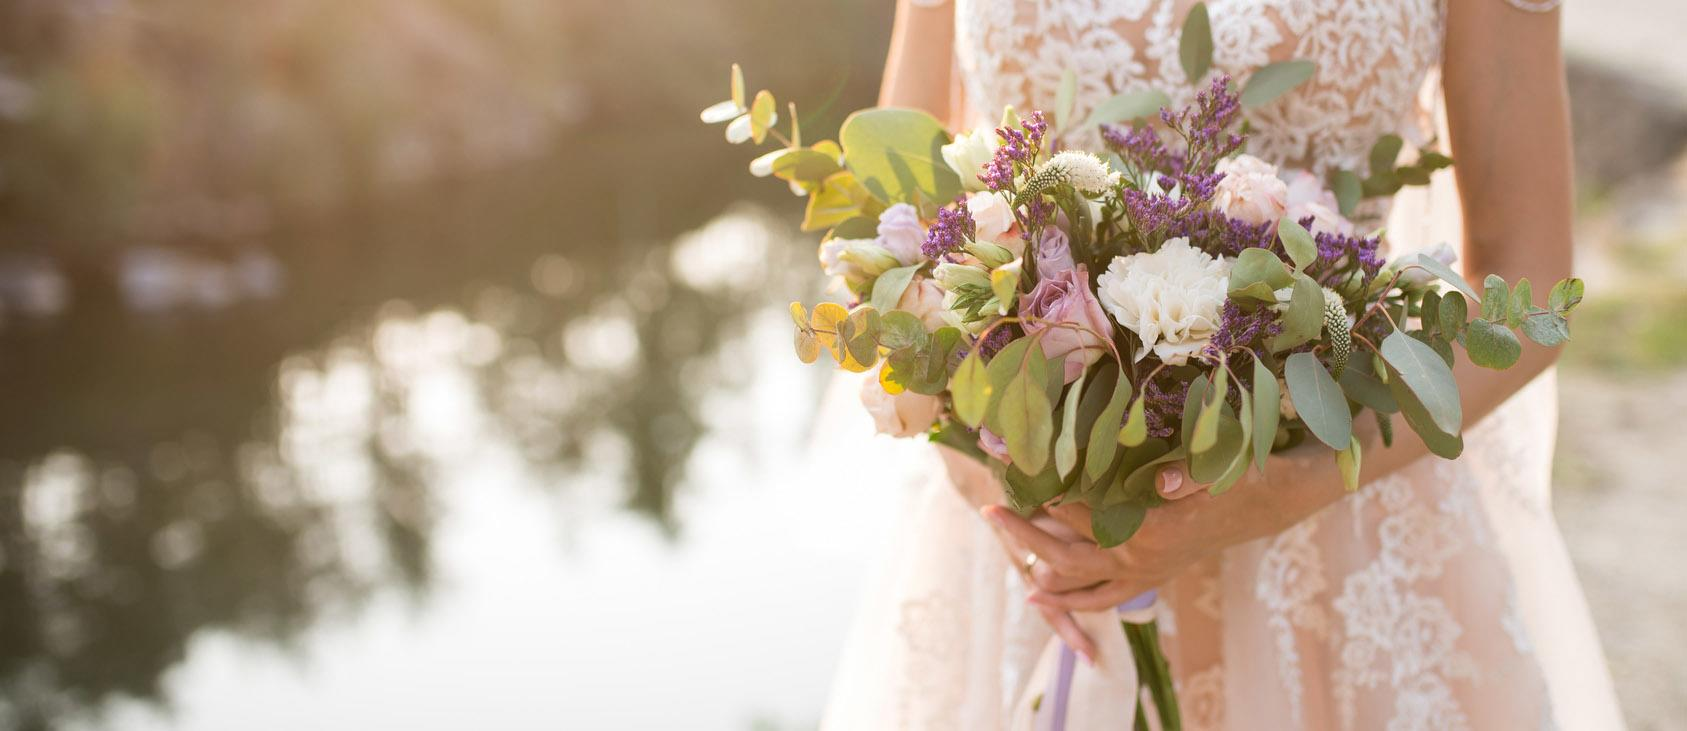 elegant wedding bouquets featured image